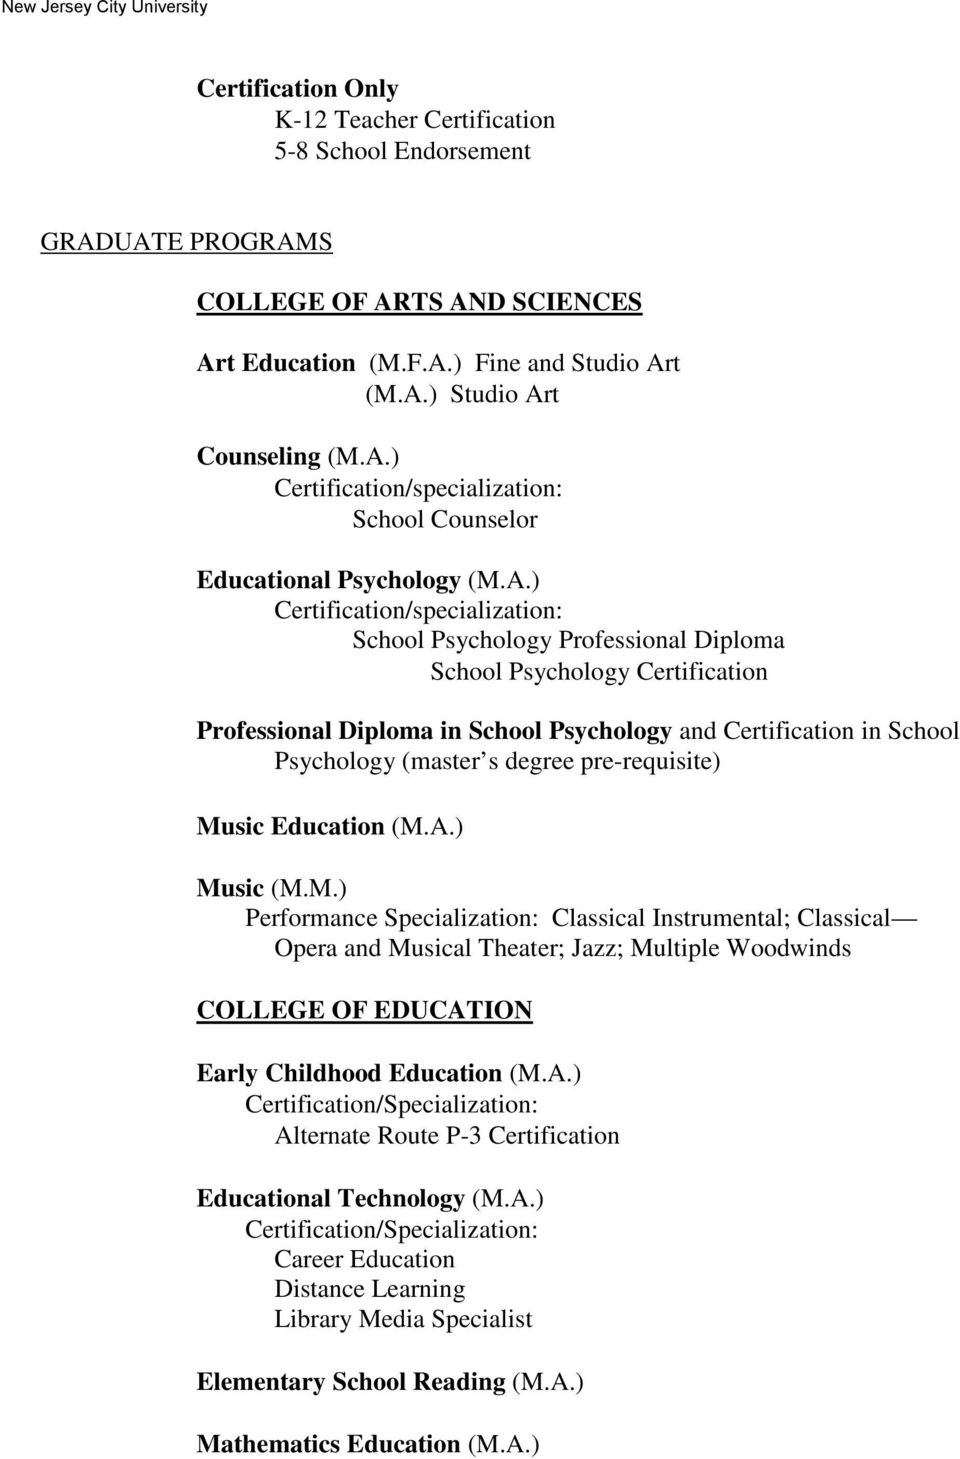 degree pre-requisite) Music Education (M.A.) Music (M.M.) Performance Specialization: Classical Instrumental; Classical Opera and Musical Theater; Jazz; Multiple Woodwinds COLLEGE OF EDUCATION Early Childhood Education (M.